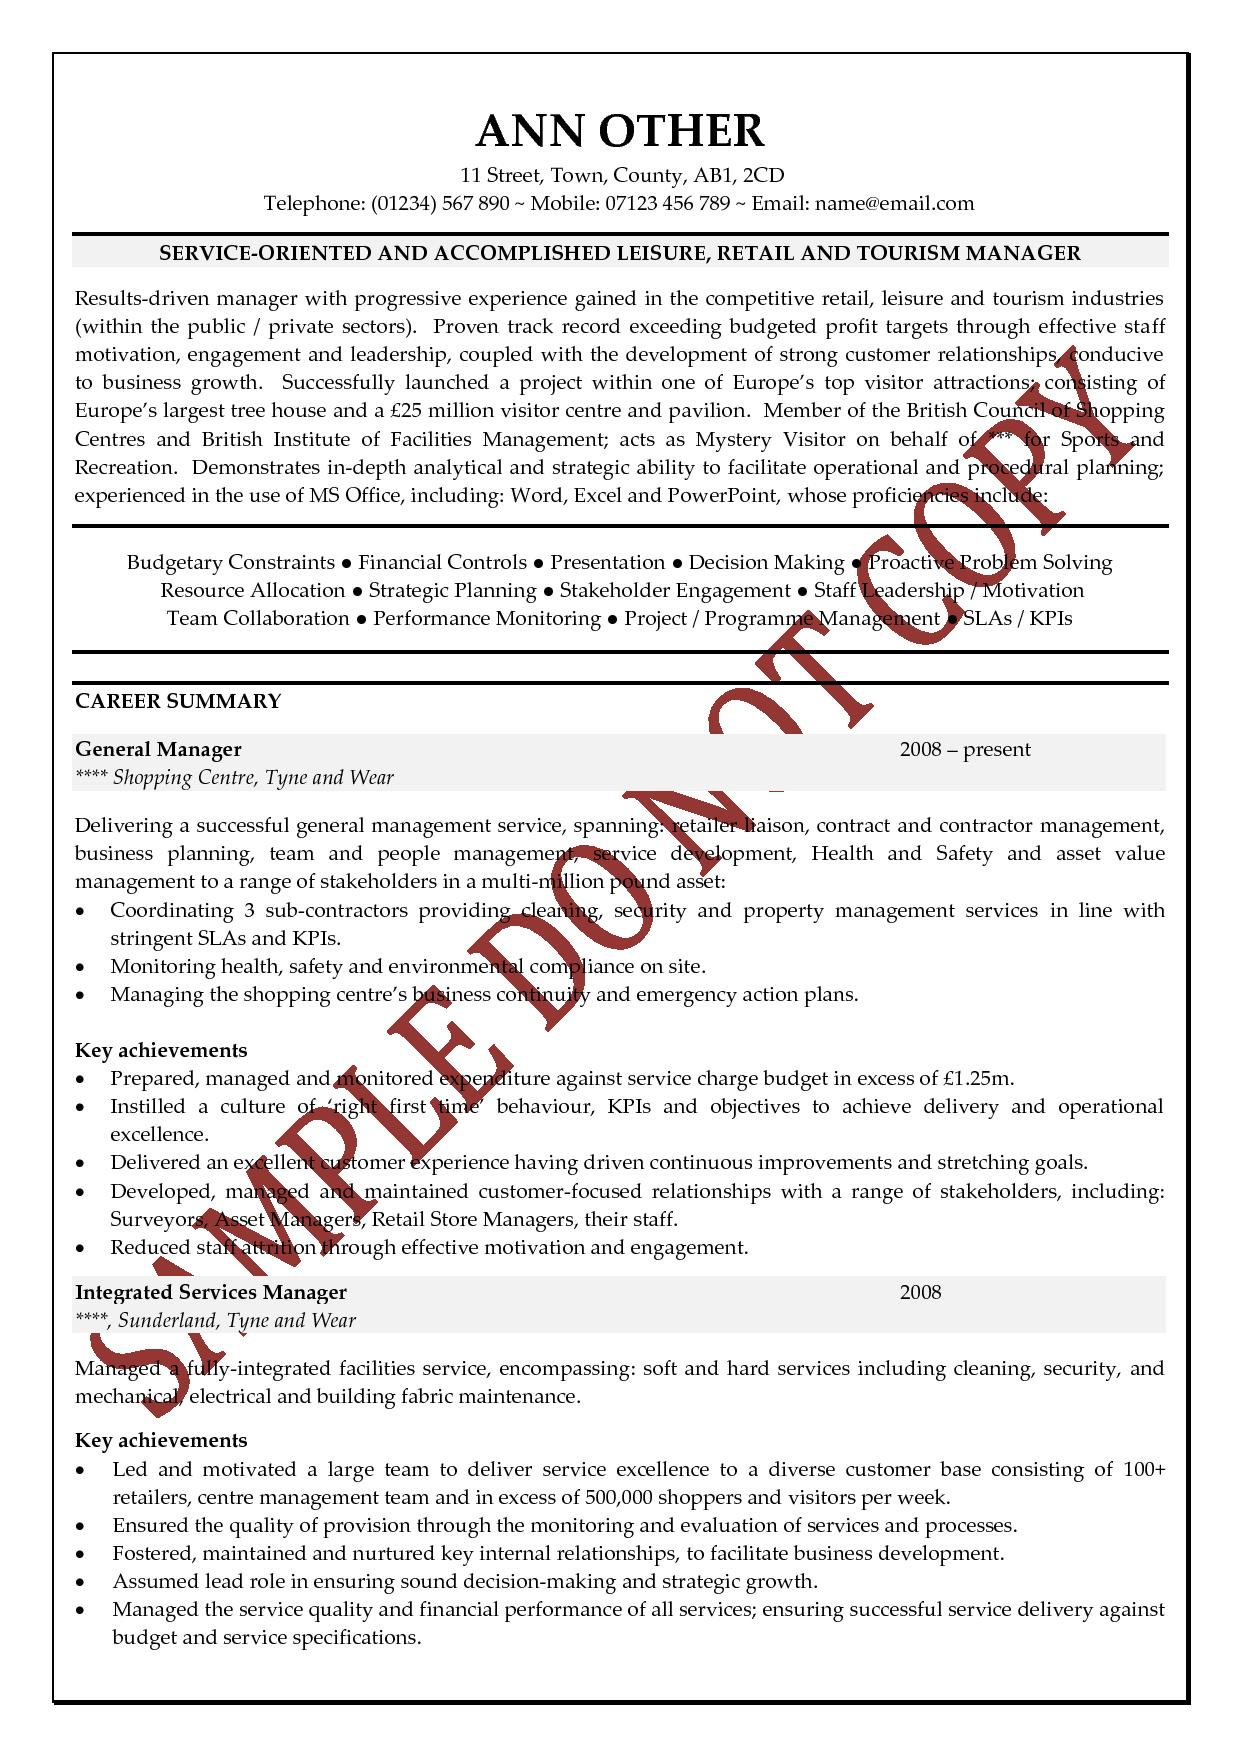 Senior Management Resume Templates Sample Of A Good Curriculum Vitae Search Results